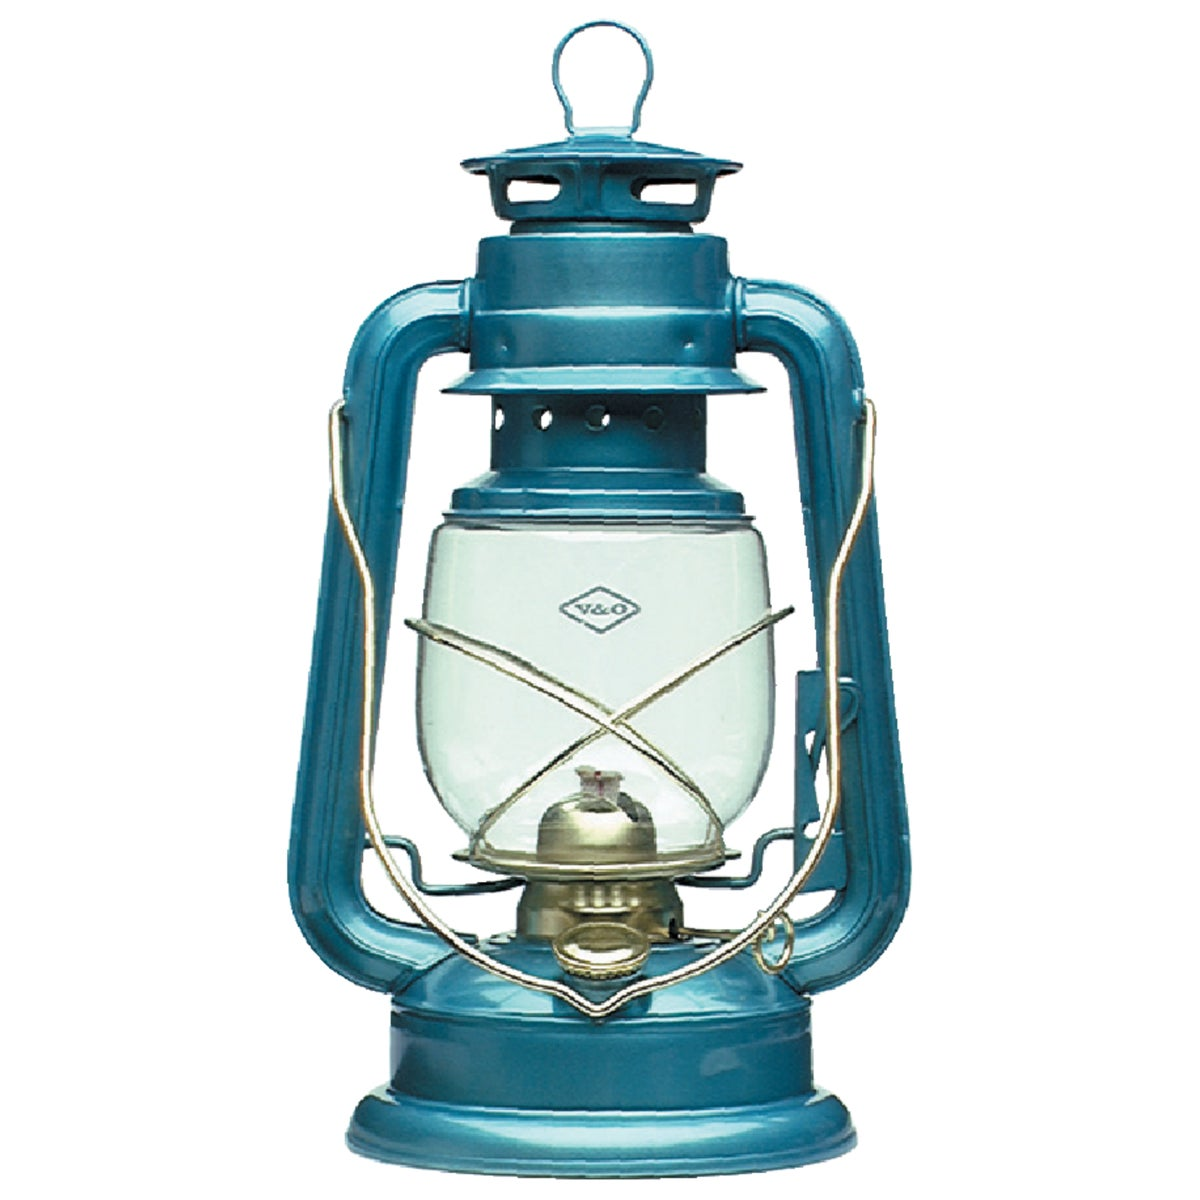 "BLUE 12"" CAMPER LANTERN - 210-32060 by 21st Century Inc"